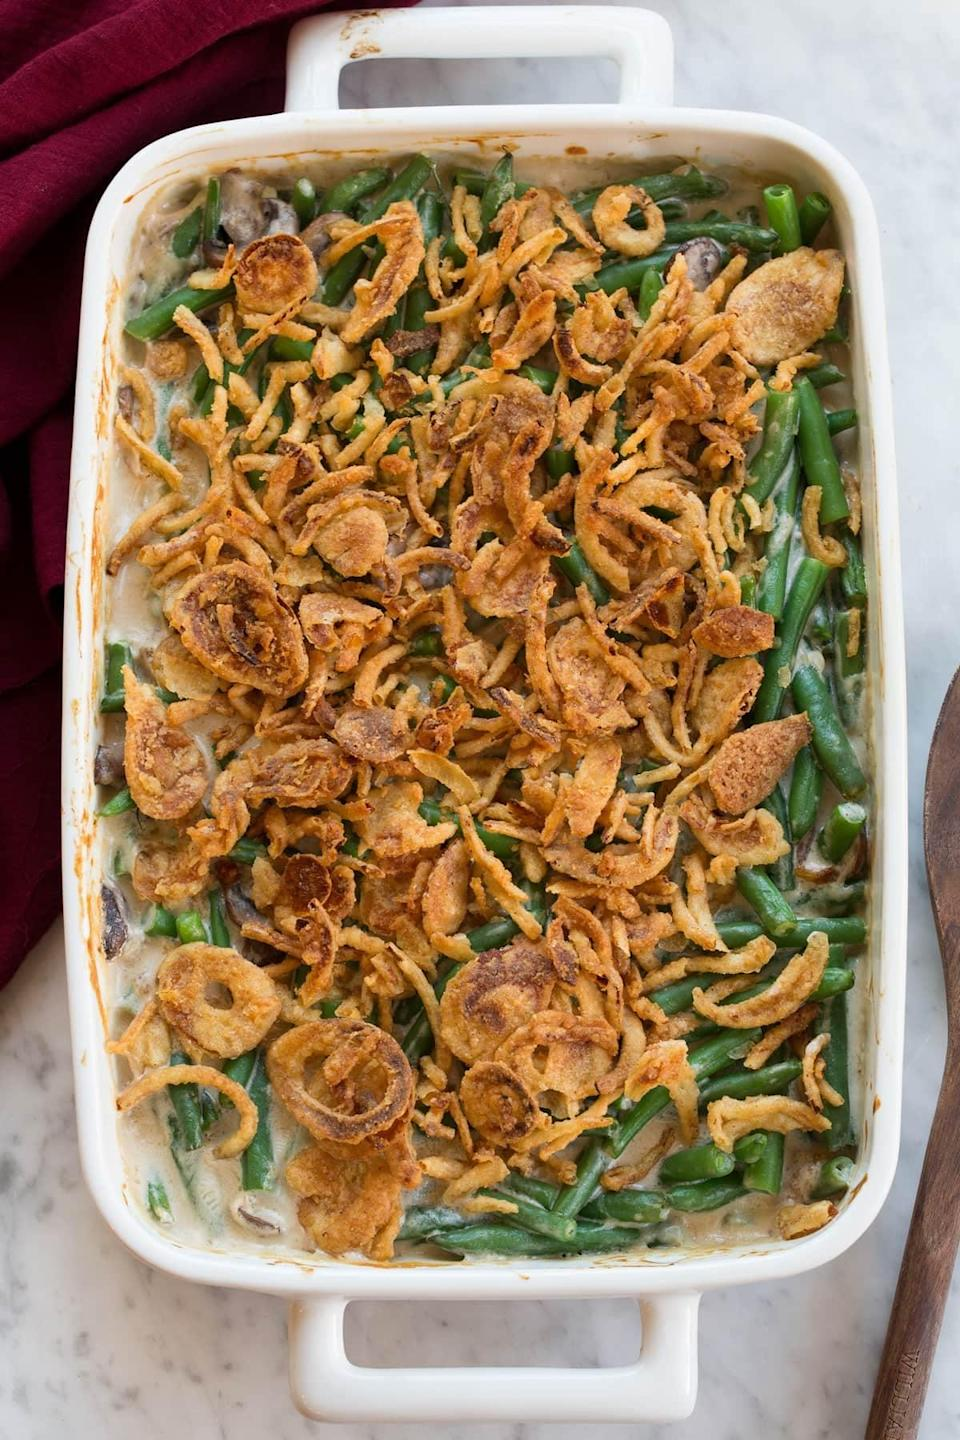 """<p>It doesn't get much more simple and classic than this recipe.</p> <p><strong>Get the recipe:</strong> <a href=""""https://www.cookingclassy.com/green-bean-casserole/"""" class=""""link rapid-noclick-resp"""" rel=""""nofollow noopener"""" target=""""_blank"""" data-ylk=""""slk:classic green bean casserole"""">classic green bean casserole</a></p>"""